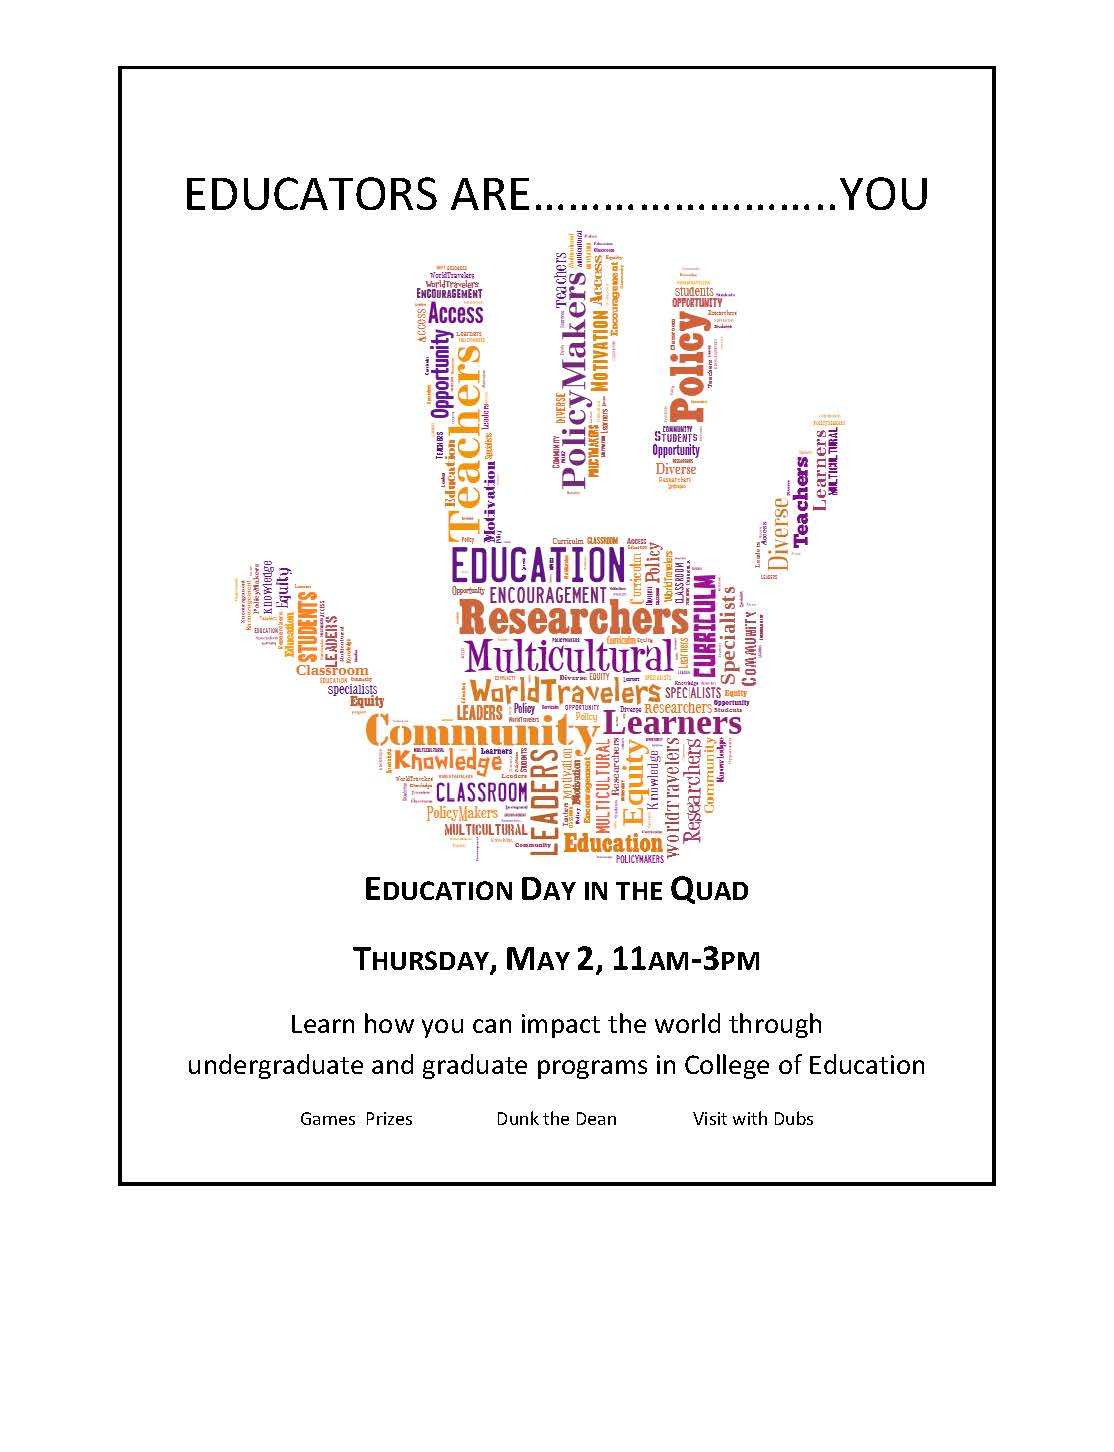 Education Day in the Quad | Undergrad News and Announcements